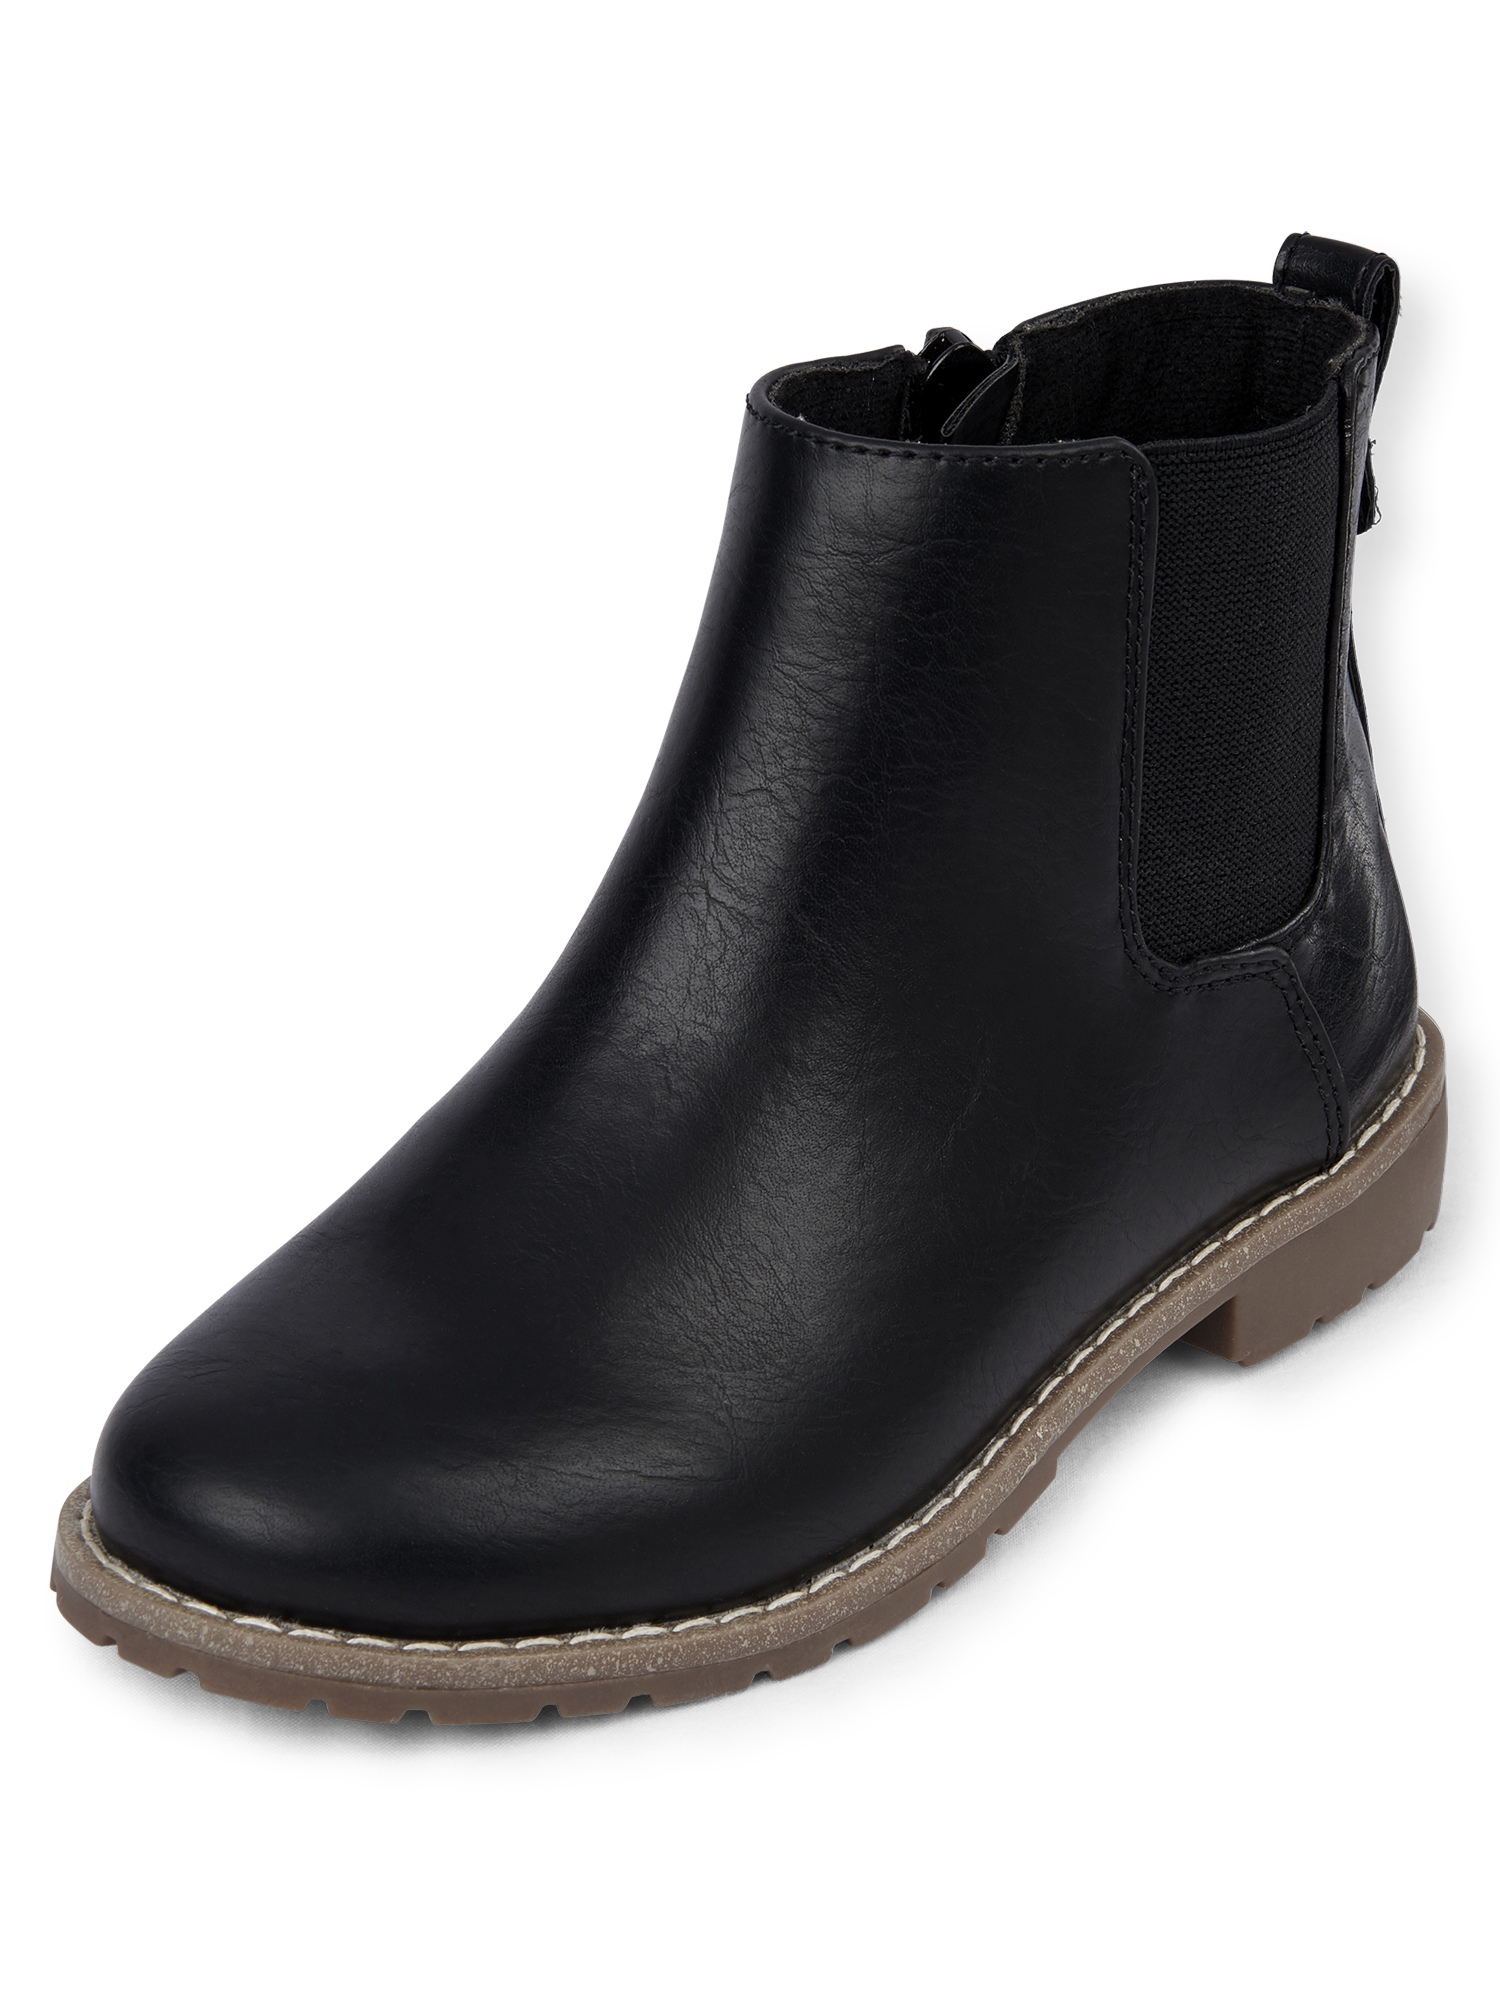 The Children's Place Boys' Chelsea Boot